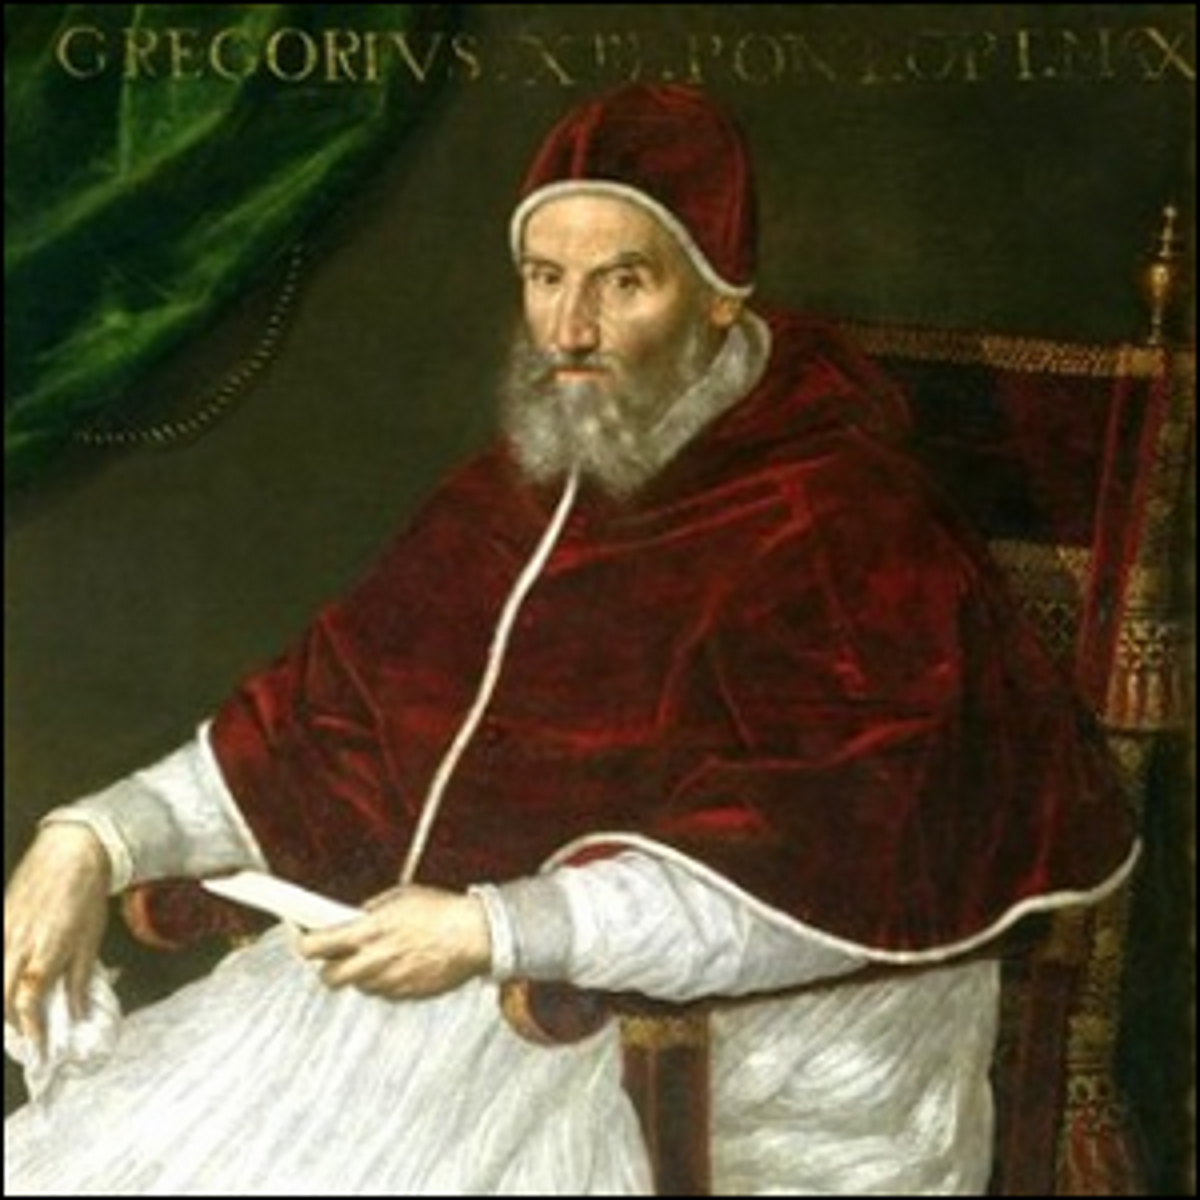 An early 17th century portrait of Pope Gregory XIII.